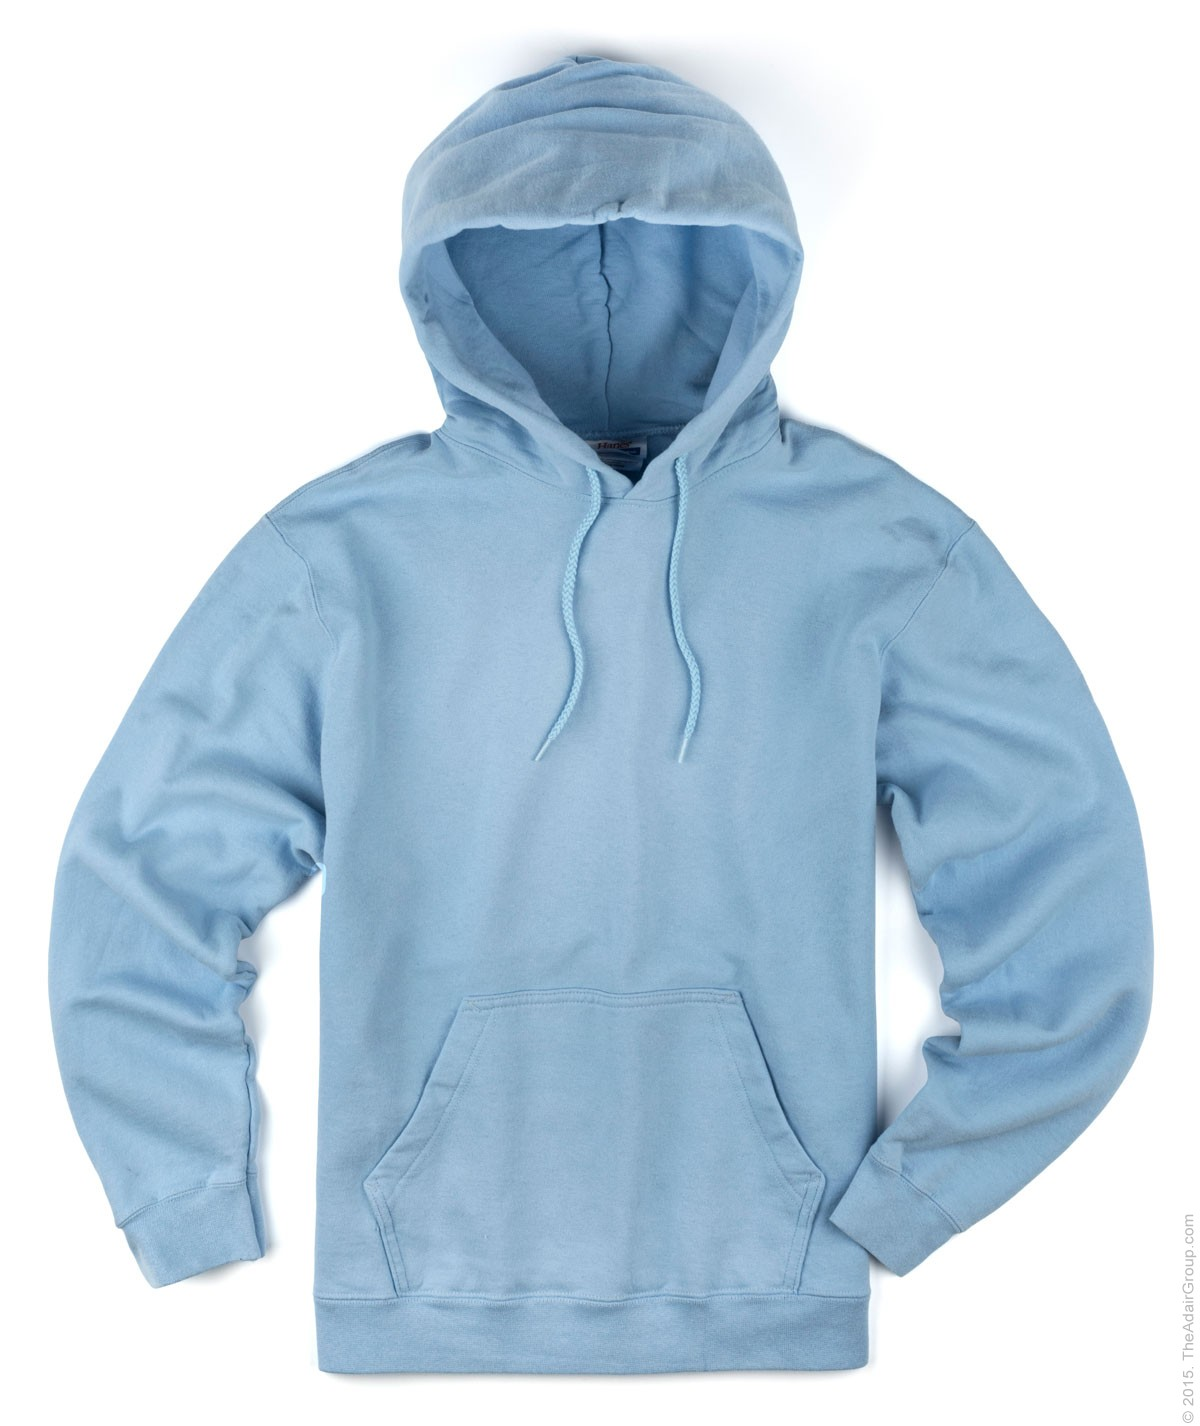 Cheap Wholesale Hoodies Baggage Clothing